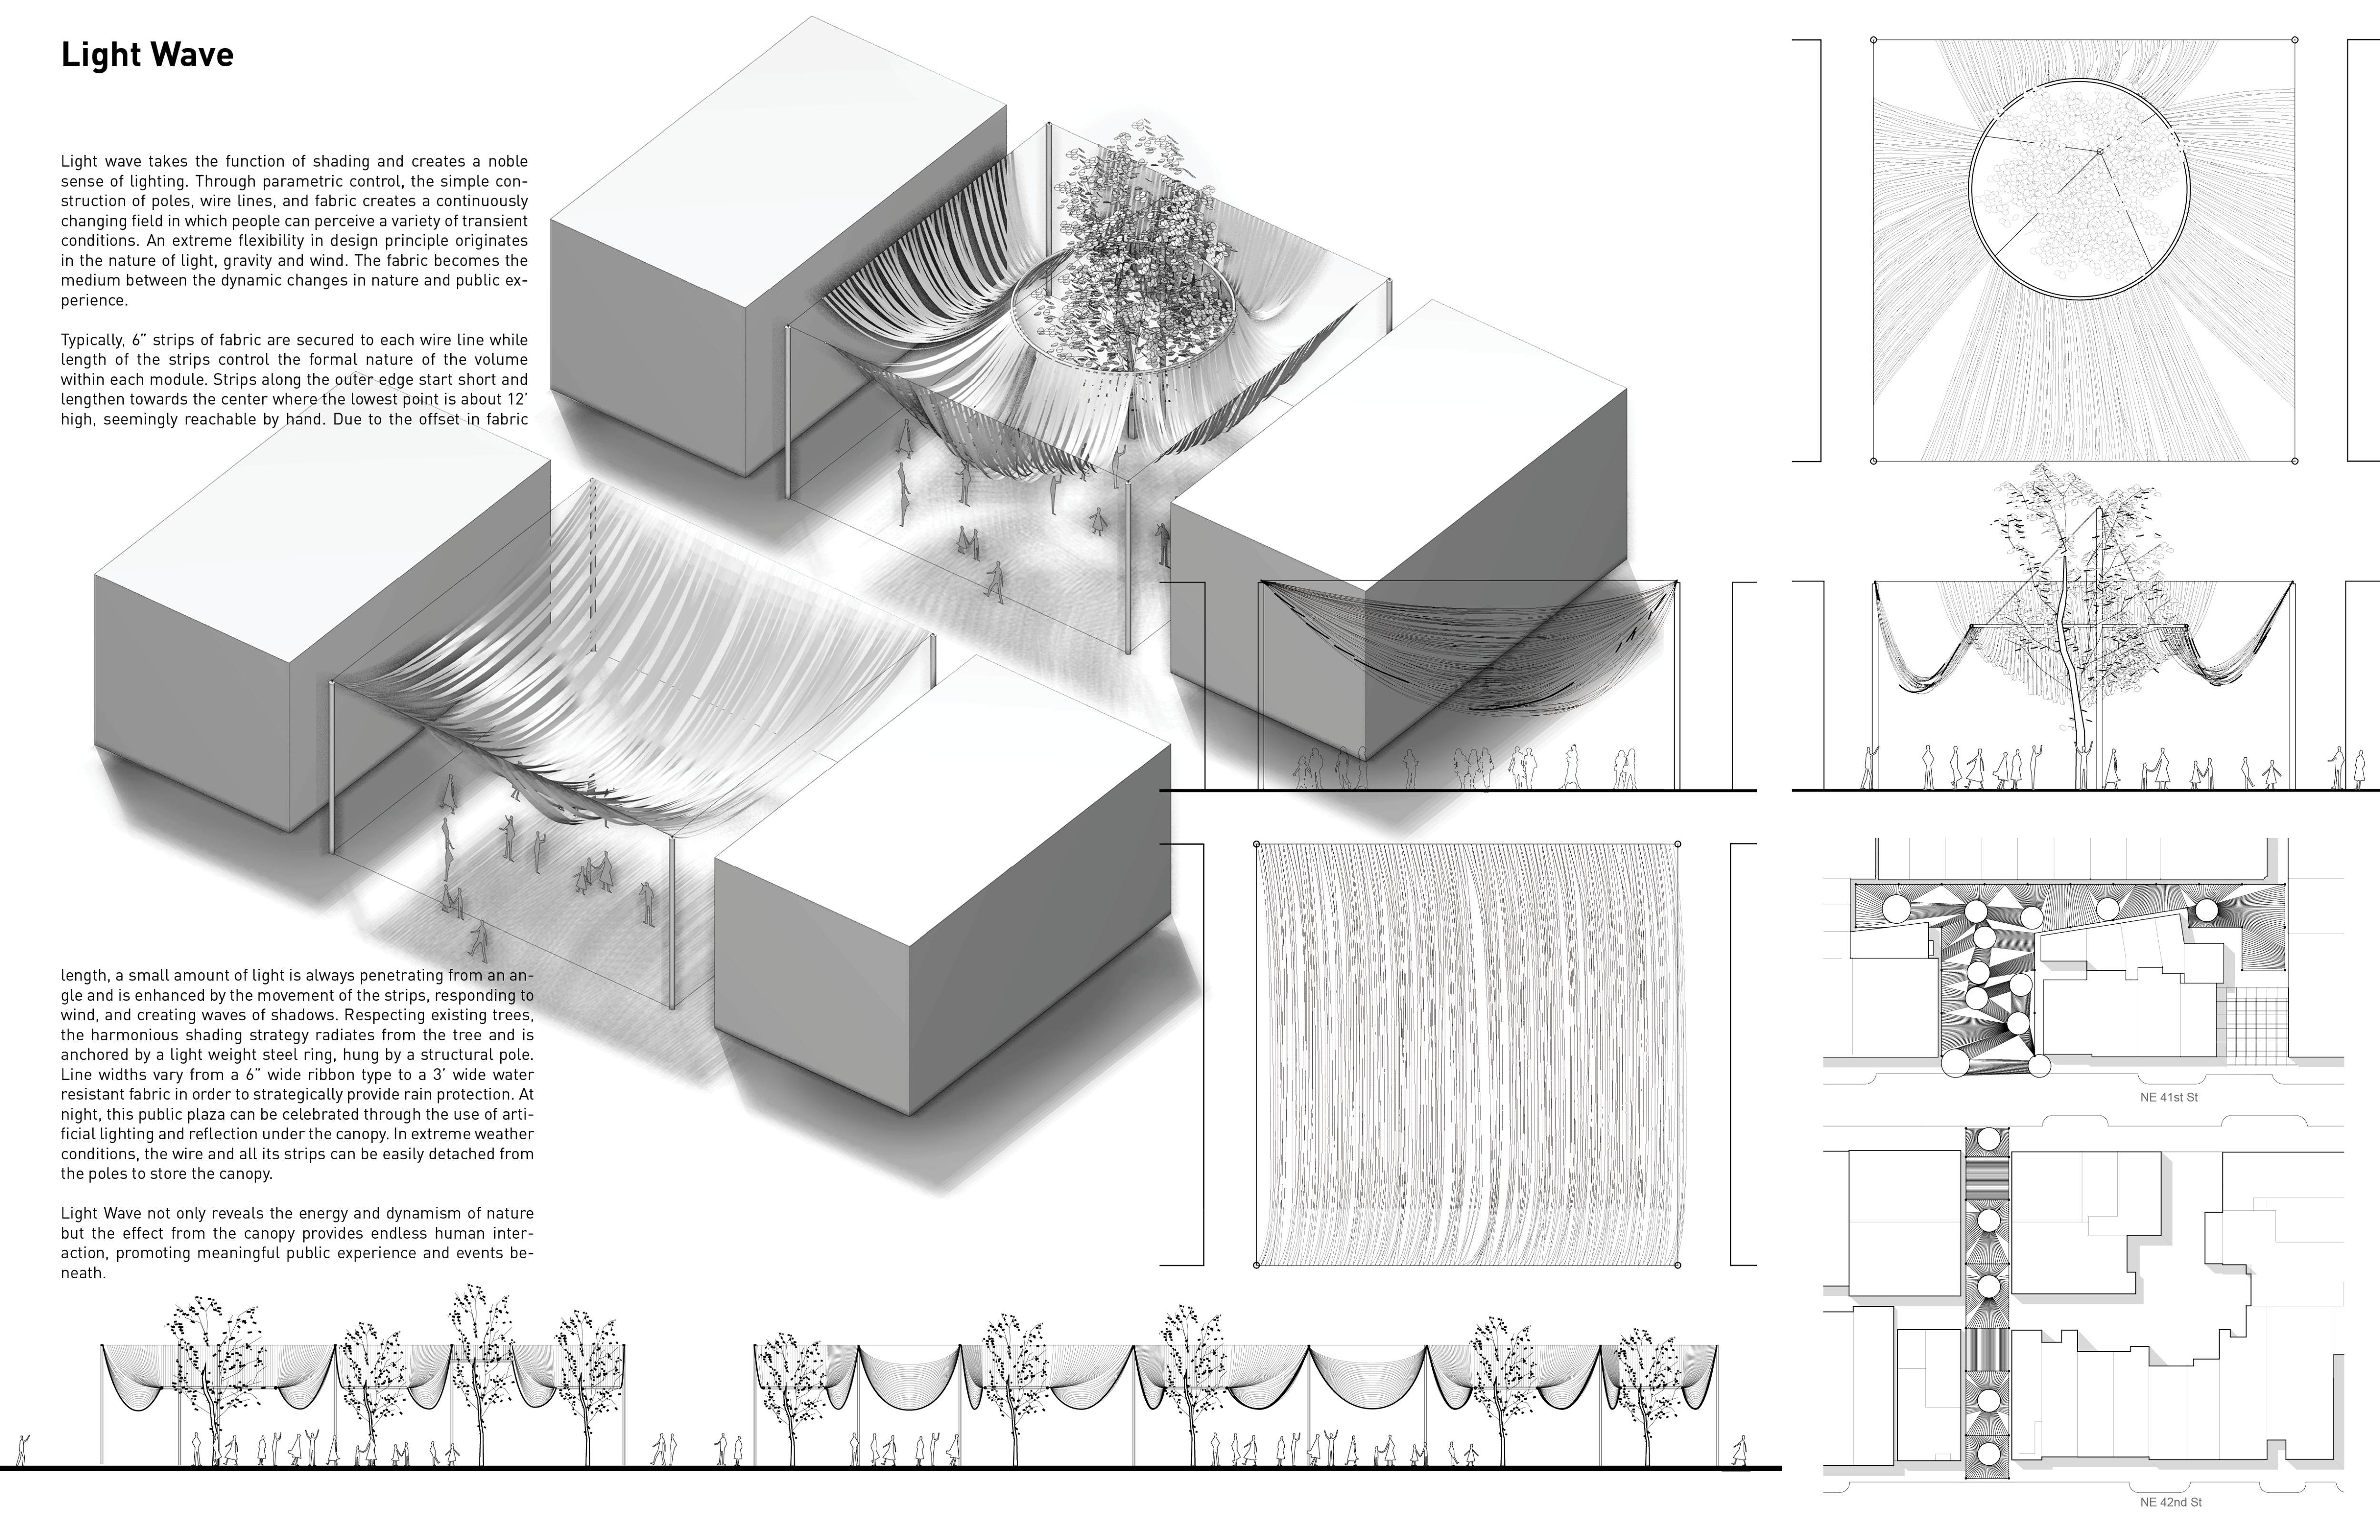 Light Wave Dioinno Architecture Pllc Xtreme Performance Module Wiring Diagrams Design Team Jin Young Song Andrew Koudlai